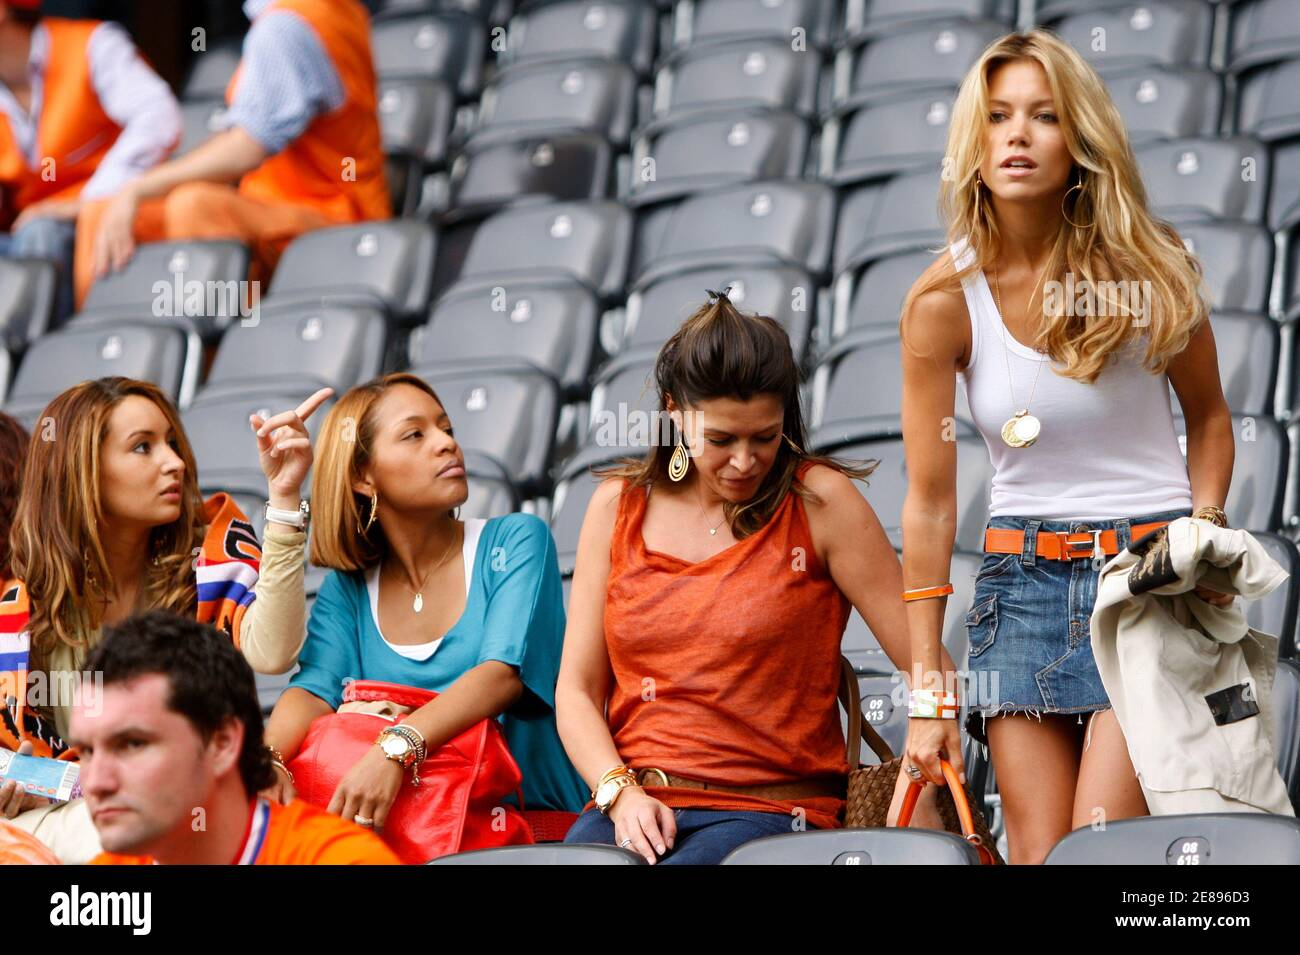 Sylvie Van der Vaart (R), wife of Netherlands' Rafael Van der Vaart, takes a seat beside Sabia Boulahrouz wife of Khalid Boulahrouz in the stands before their Group C Euro 2008 soccer match against Italy at the Stade de Suisse Stadium in Bern June 9, 2008.   REUTERS/Michael Kooren (SWITZERLAND)  MOBILE OUT. EDITORIAL USE ONLY Stock Photo